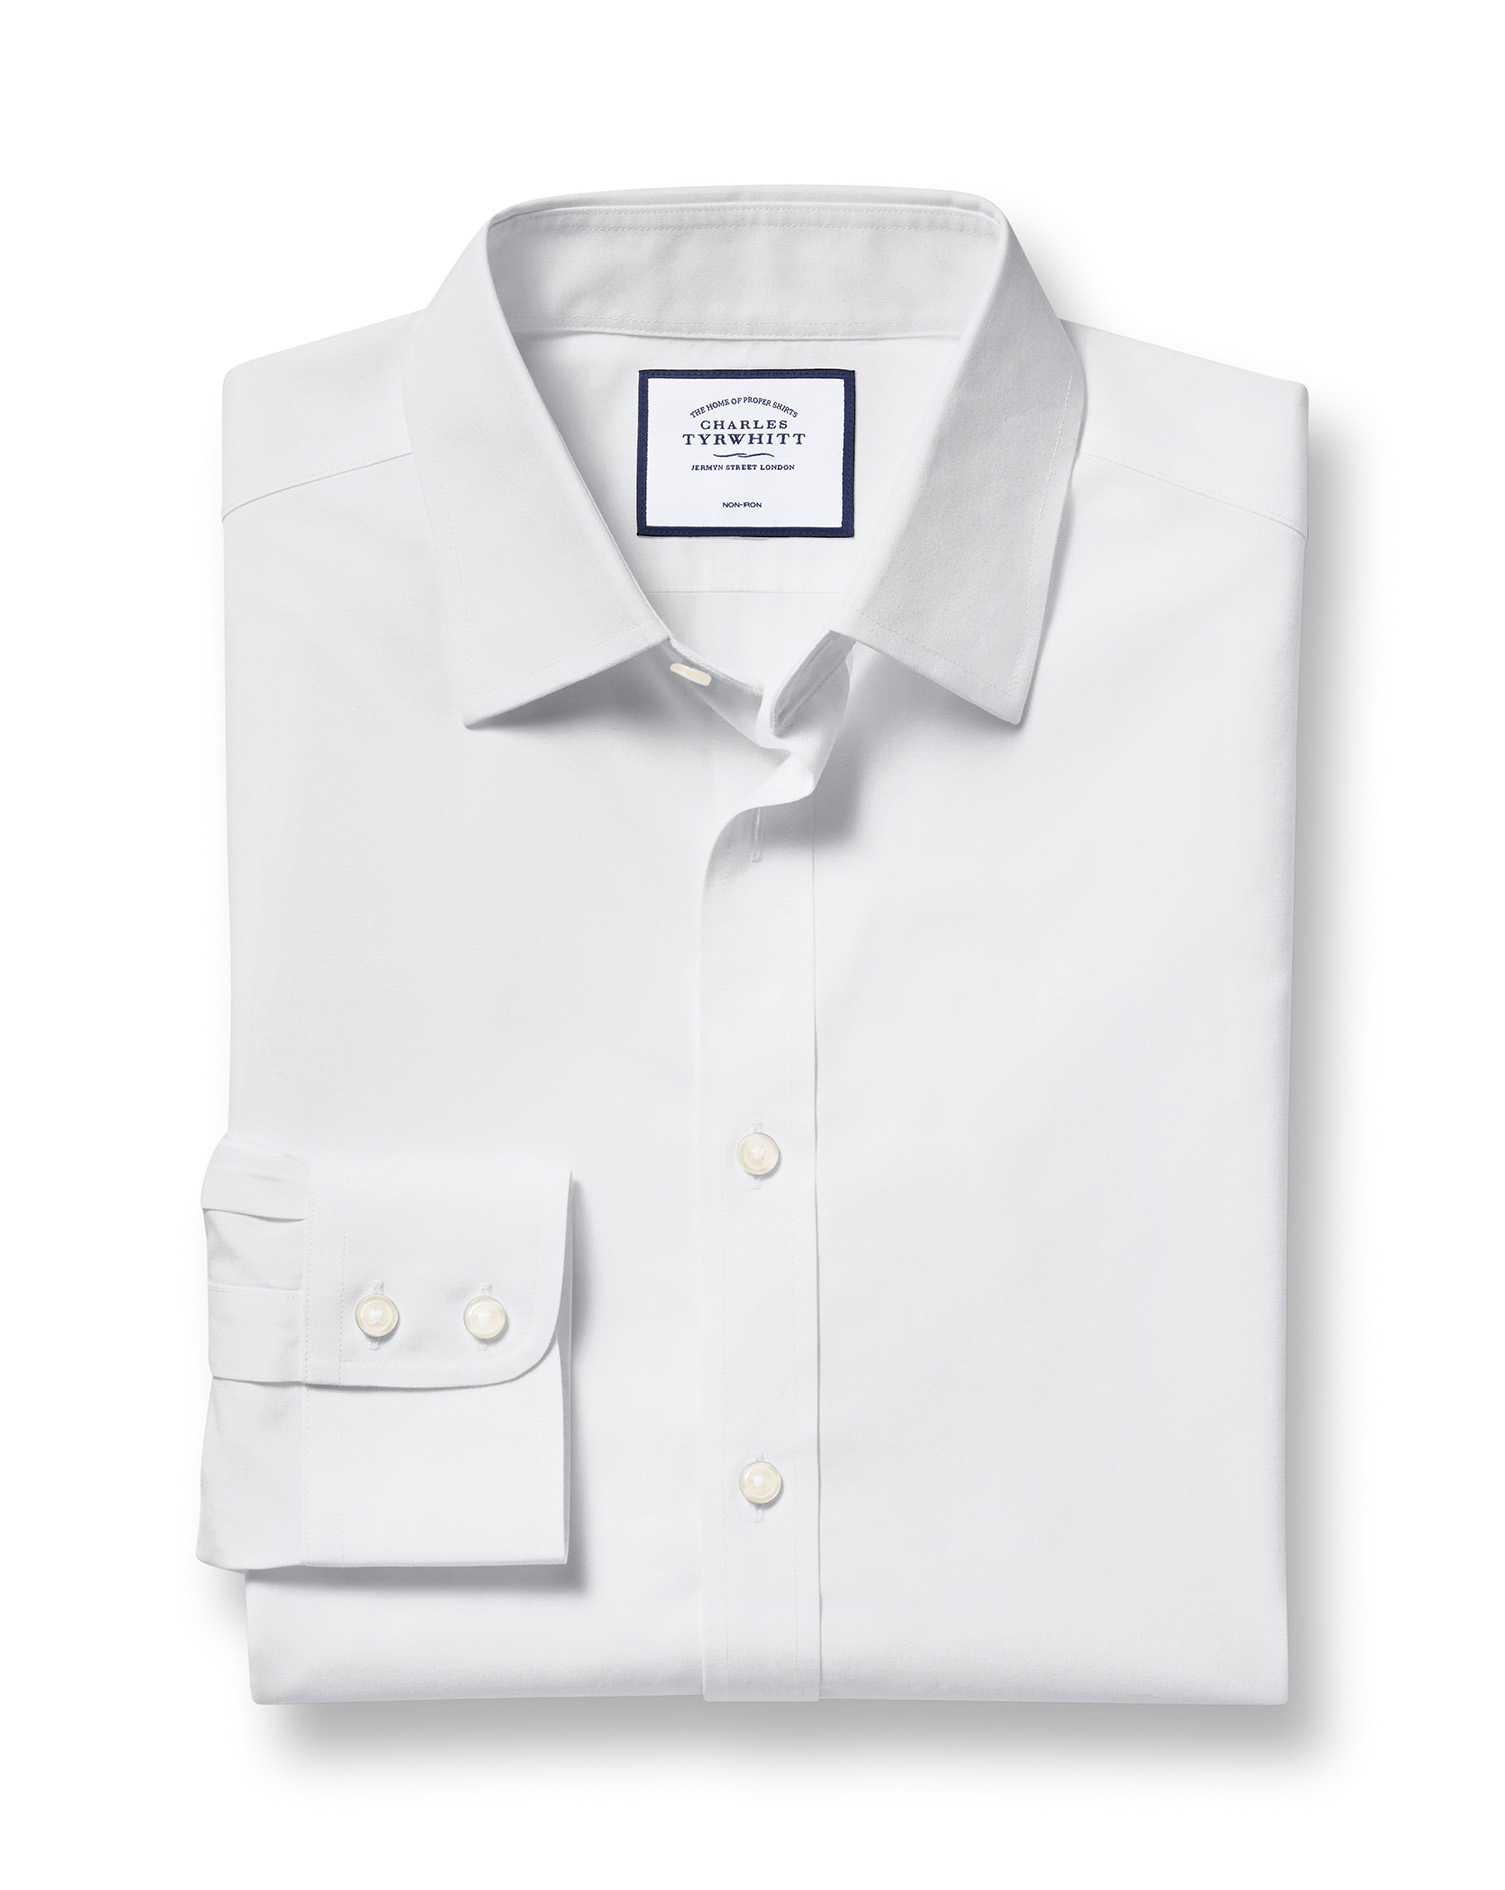 Slim Fit Non-Iron Poplin White Cotton Formal Shirt Single Cuff Size 15/32 by Charles Tyrwhitt